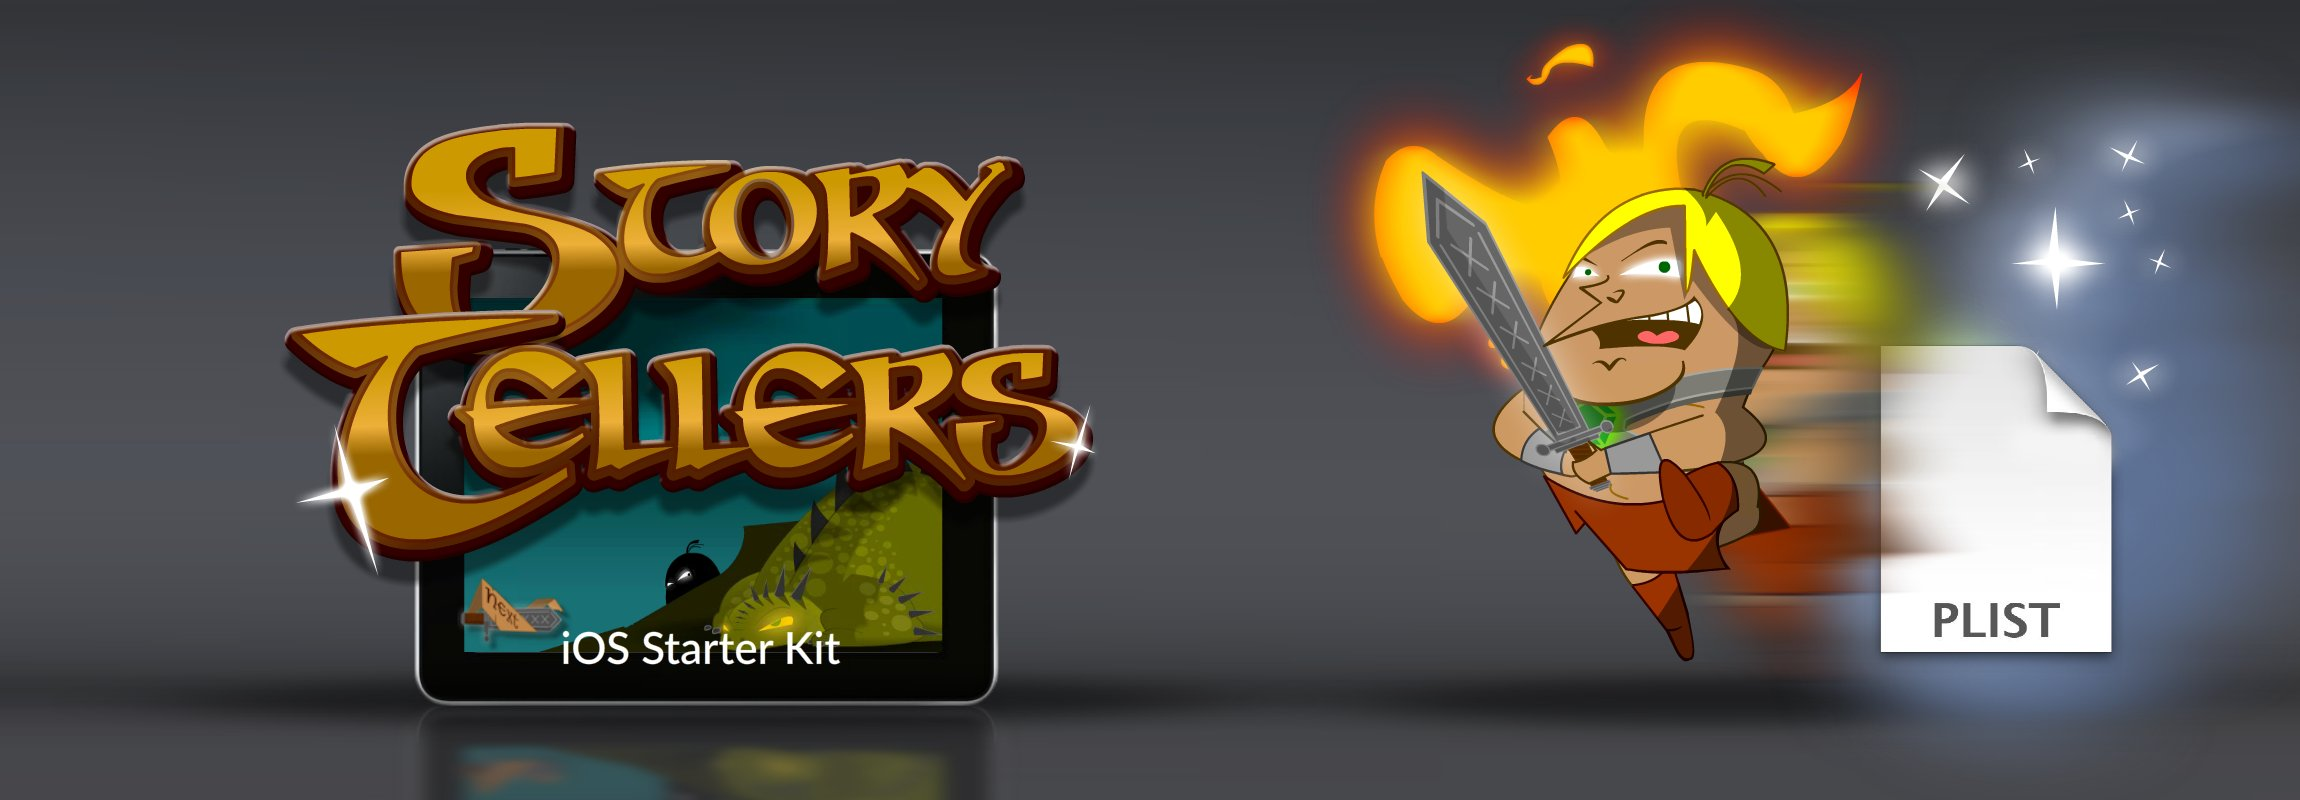 Click to view Story Tellers iOS Starter Kit